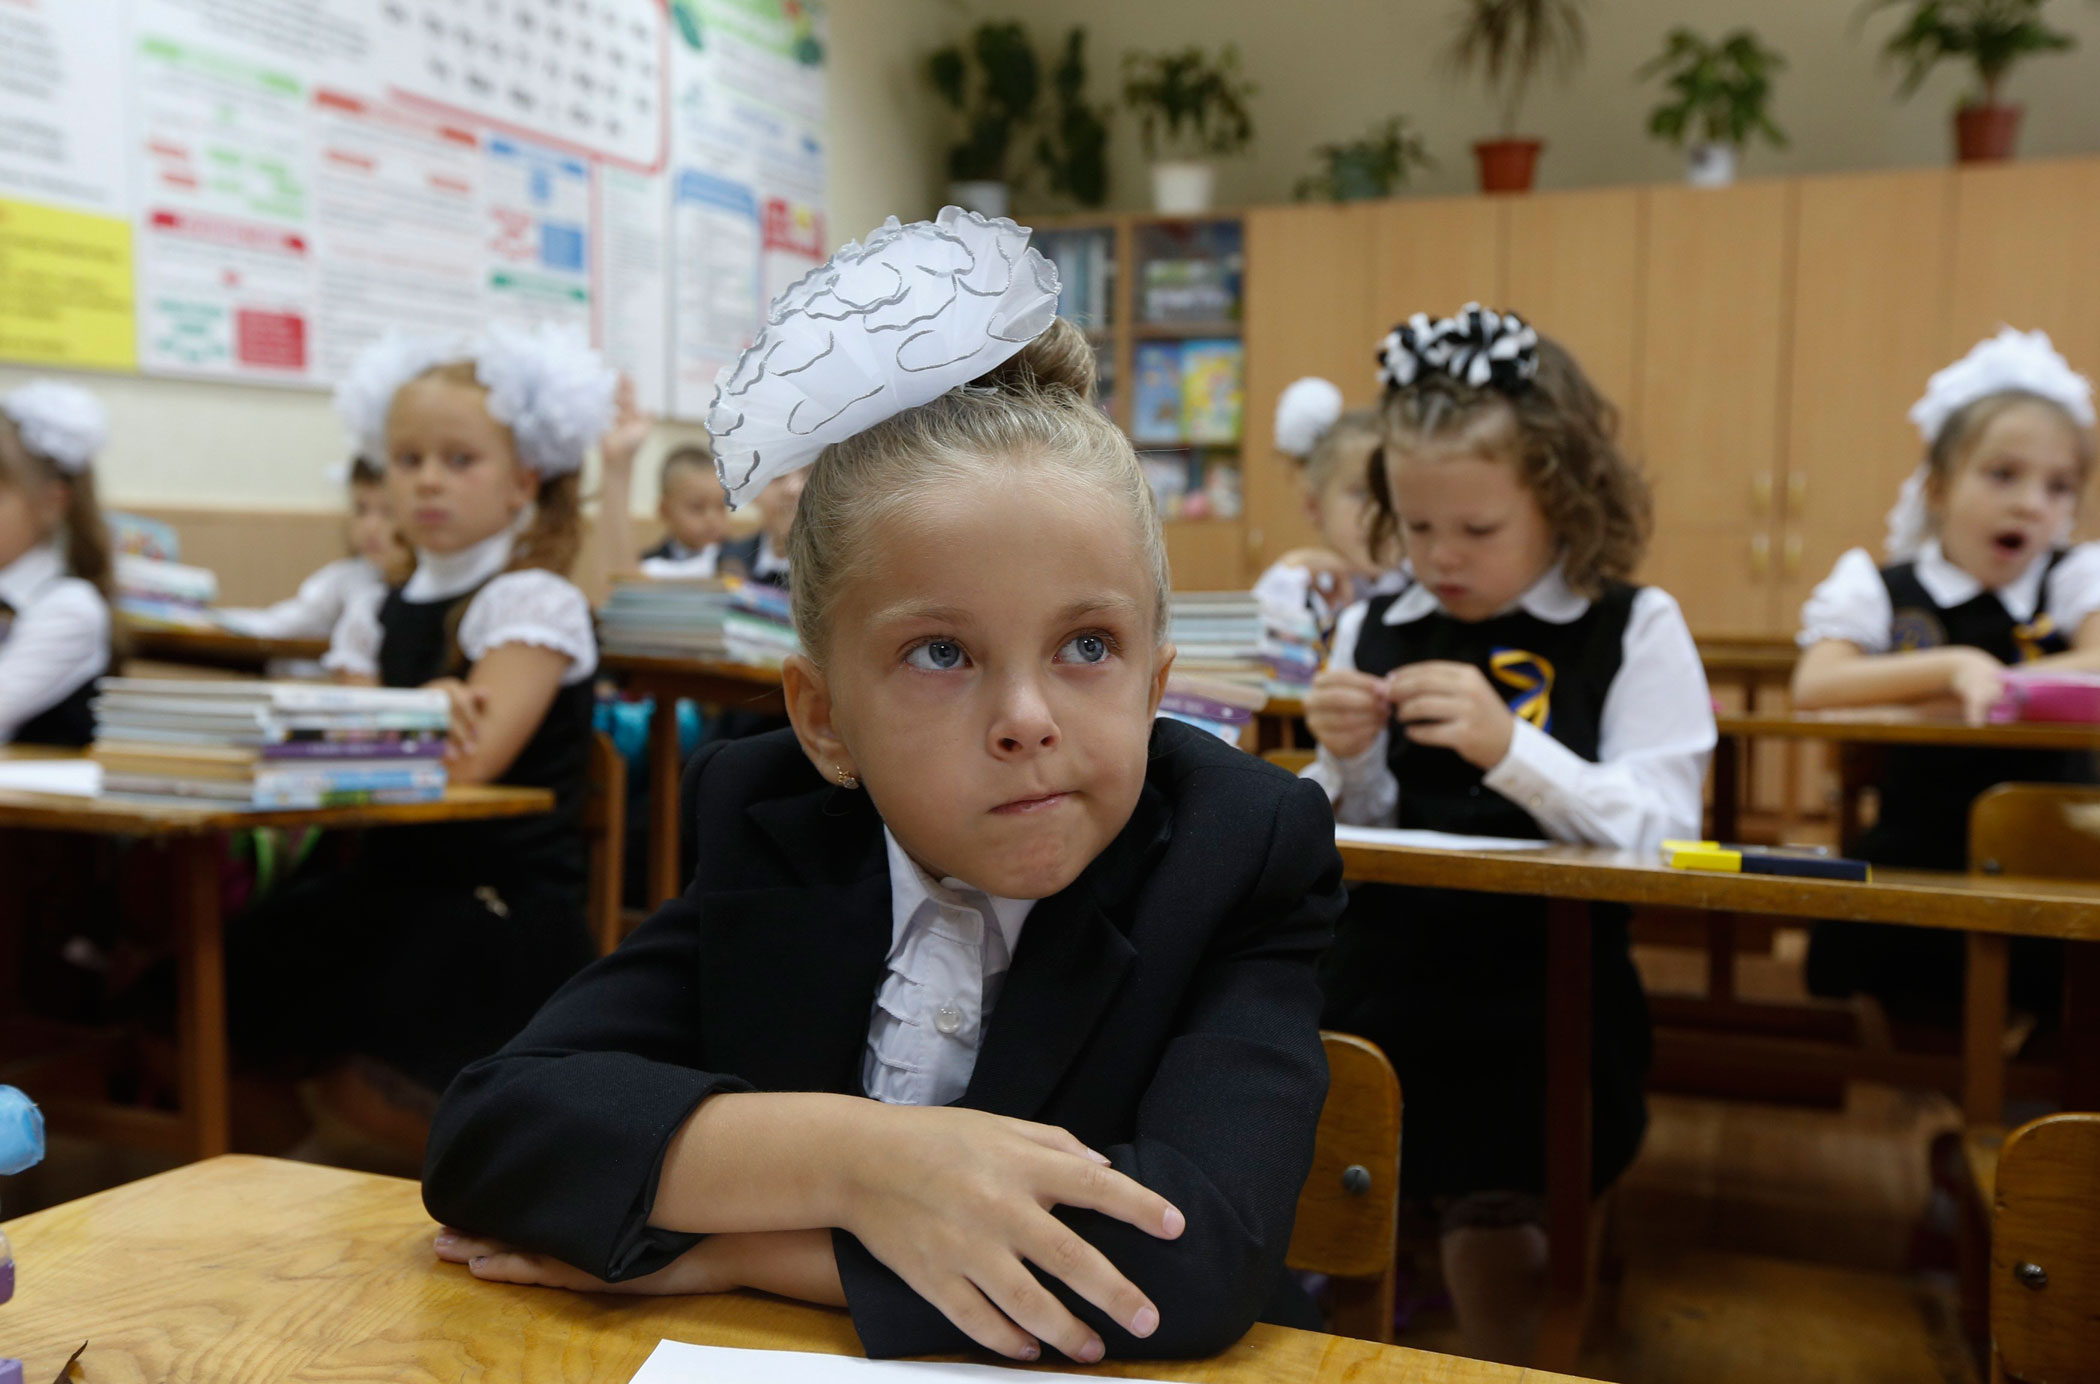 Students attend their first lesson of the day in a school in the southern coastal town of Mariupol, Ukraine on Sept. 1, 2014.